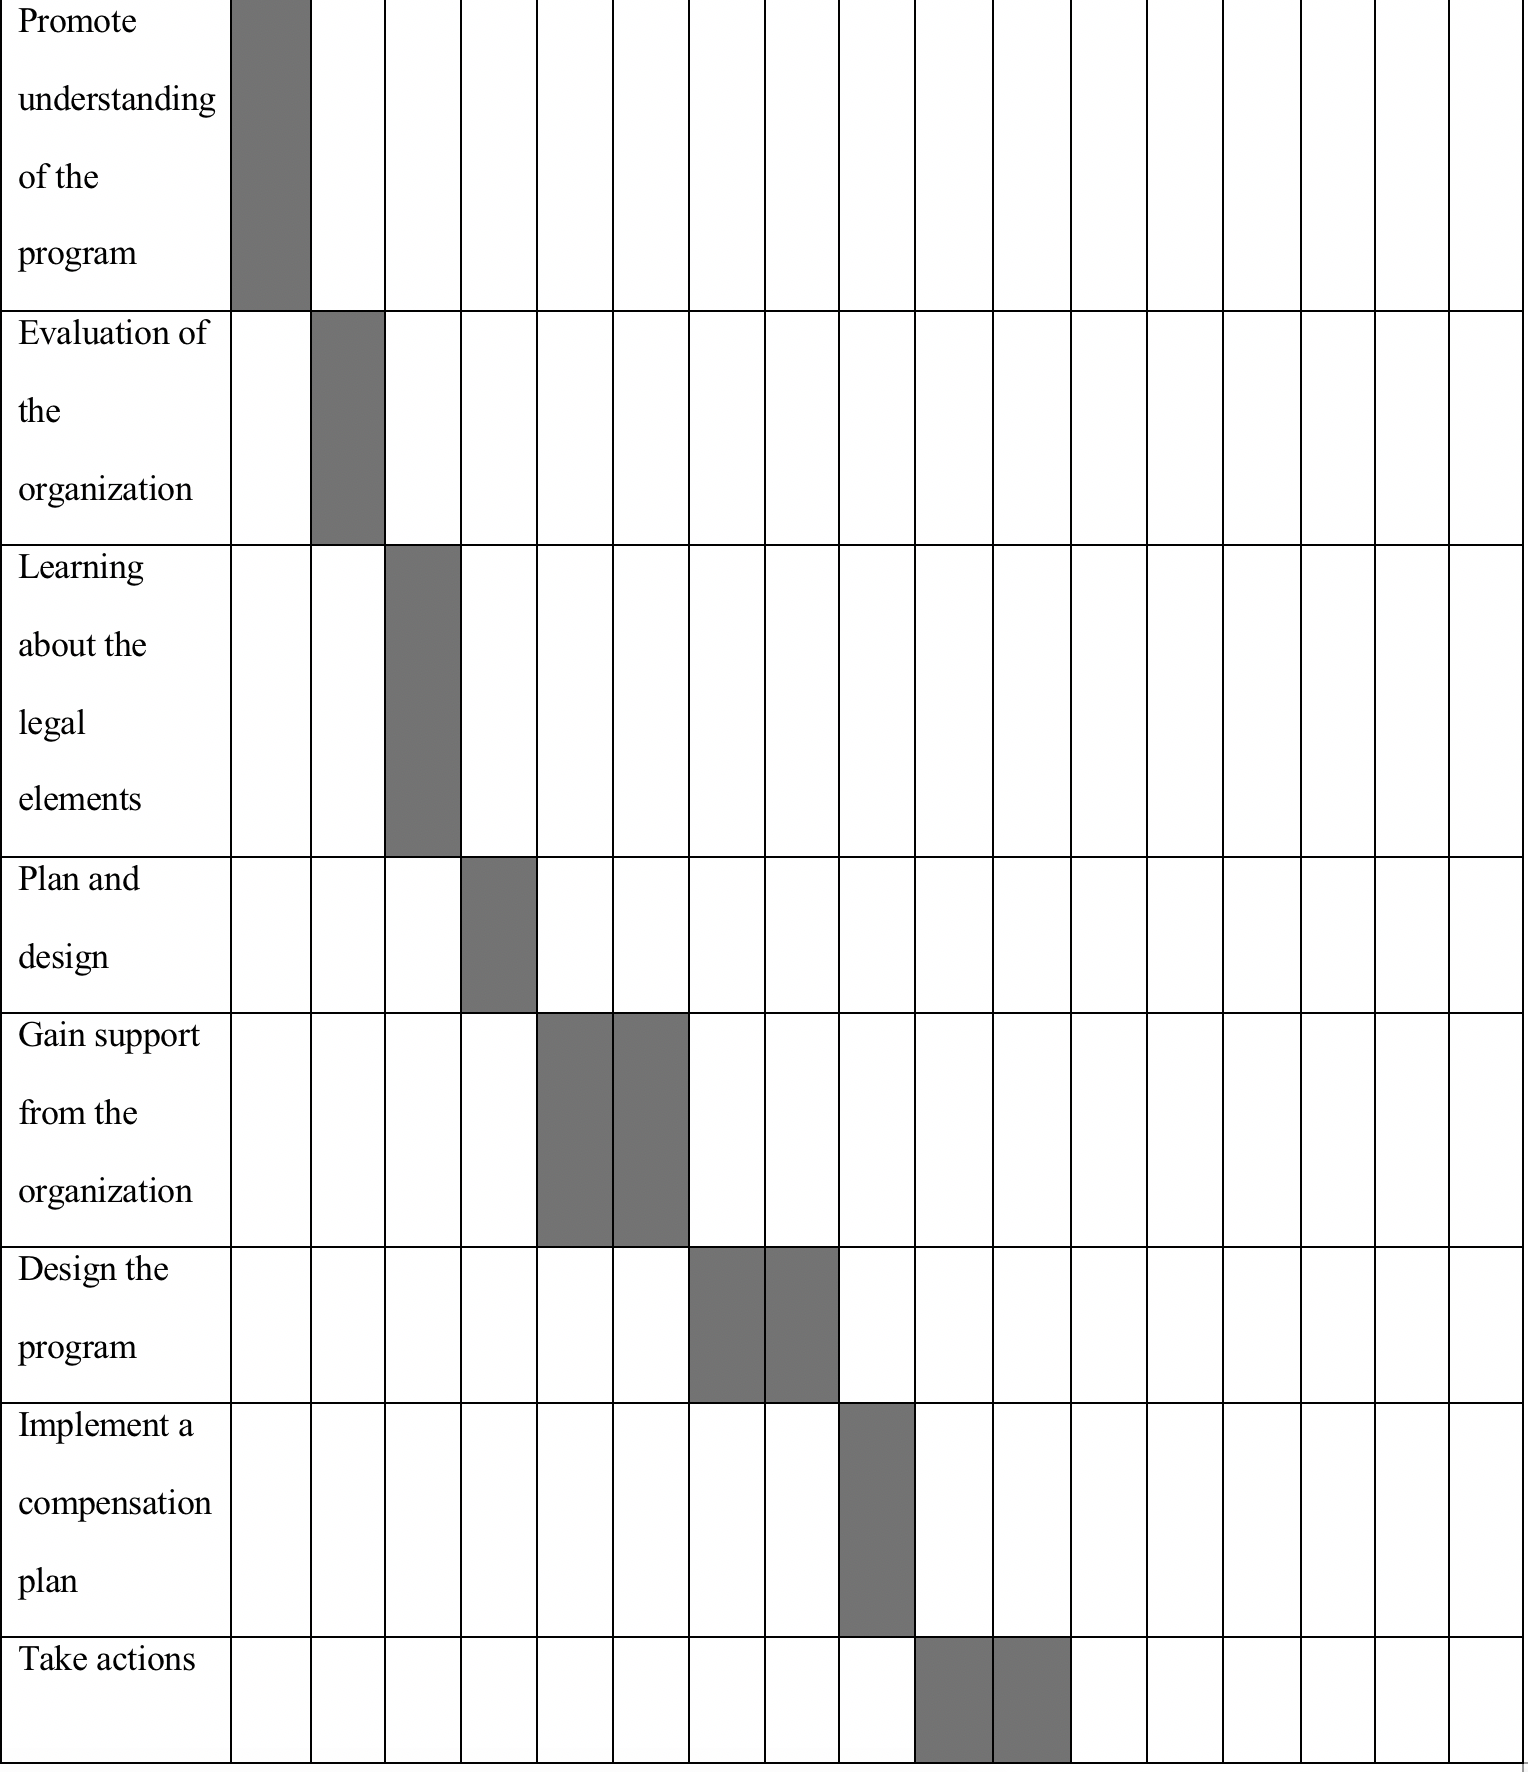 The schedule for implementation